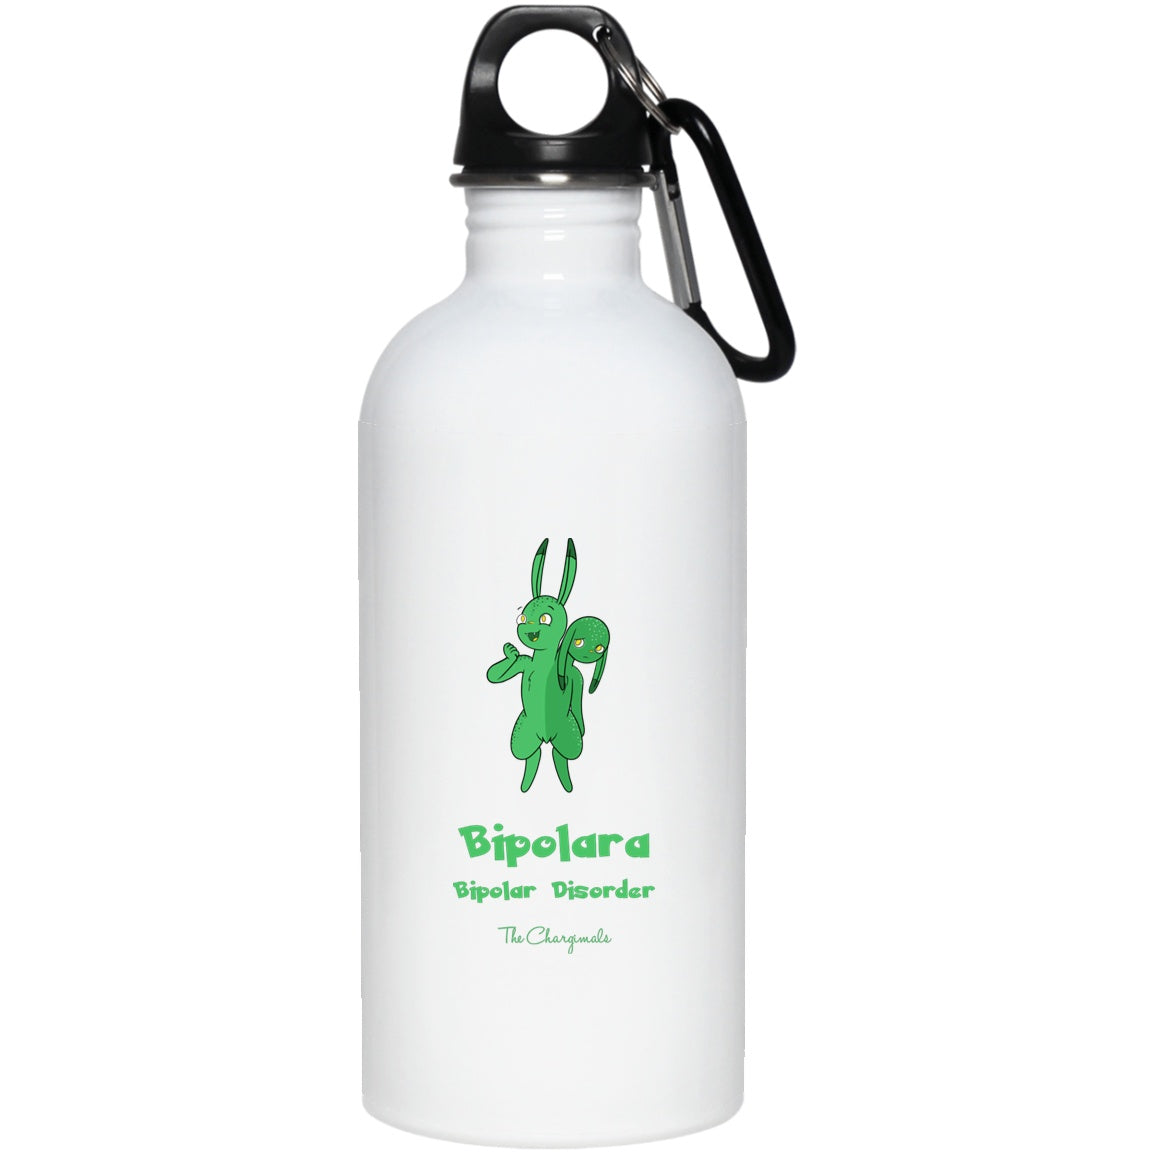 Lara the Bipolar Disorder Monster Mug, Travel Mug And Water Bottle - The Unchargeables